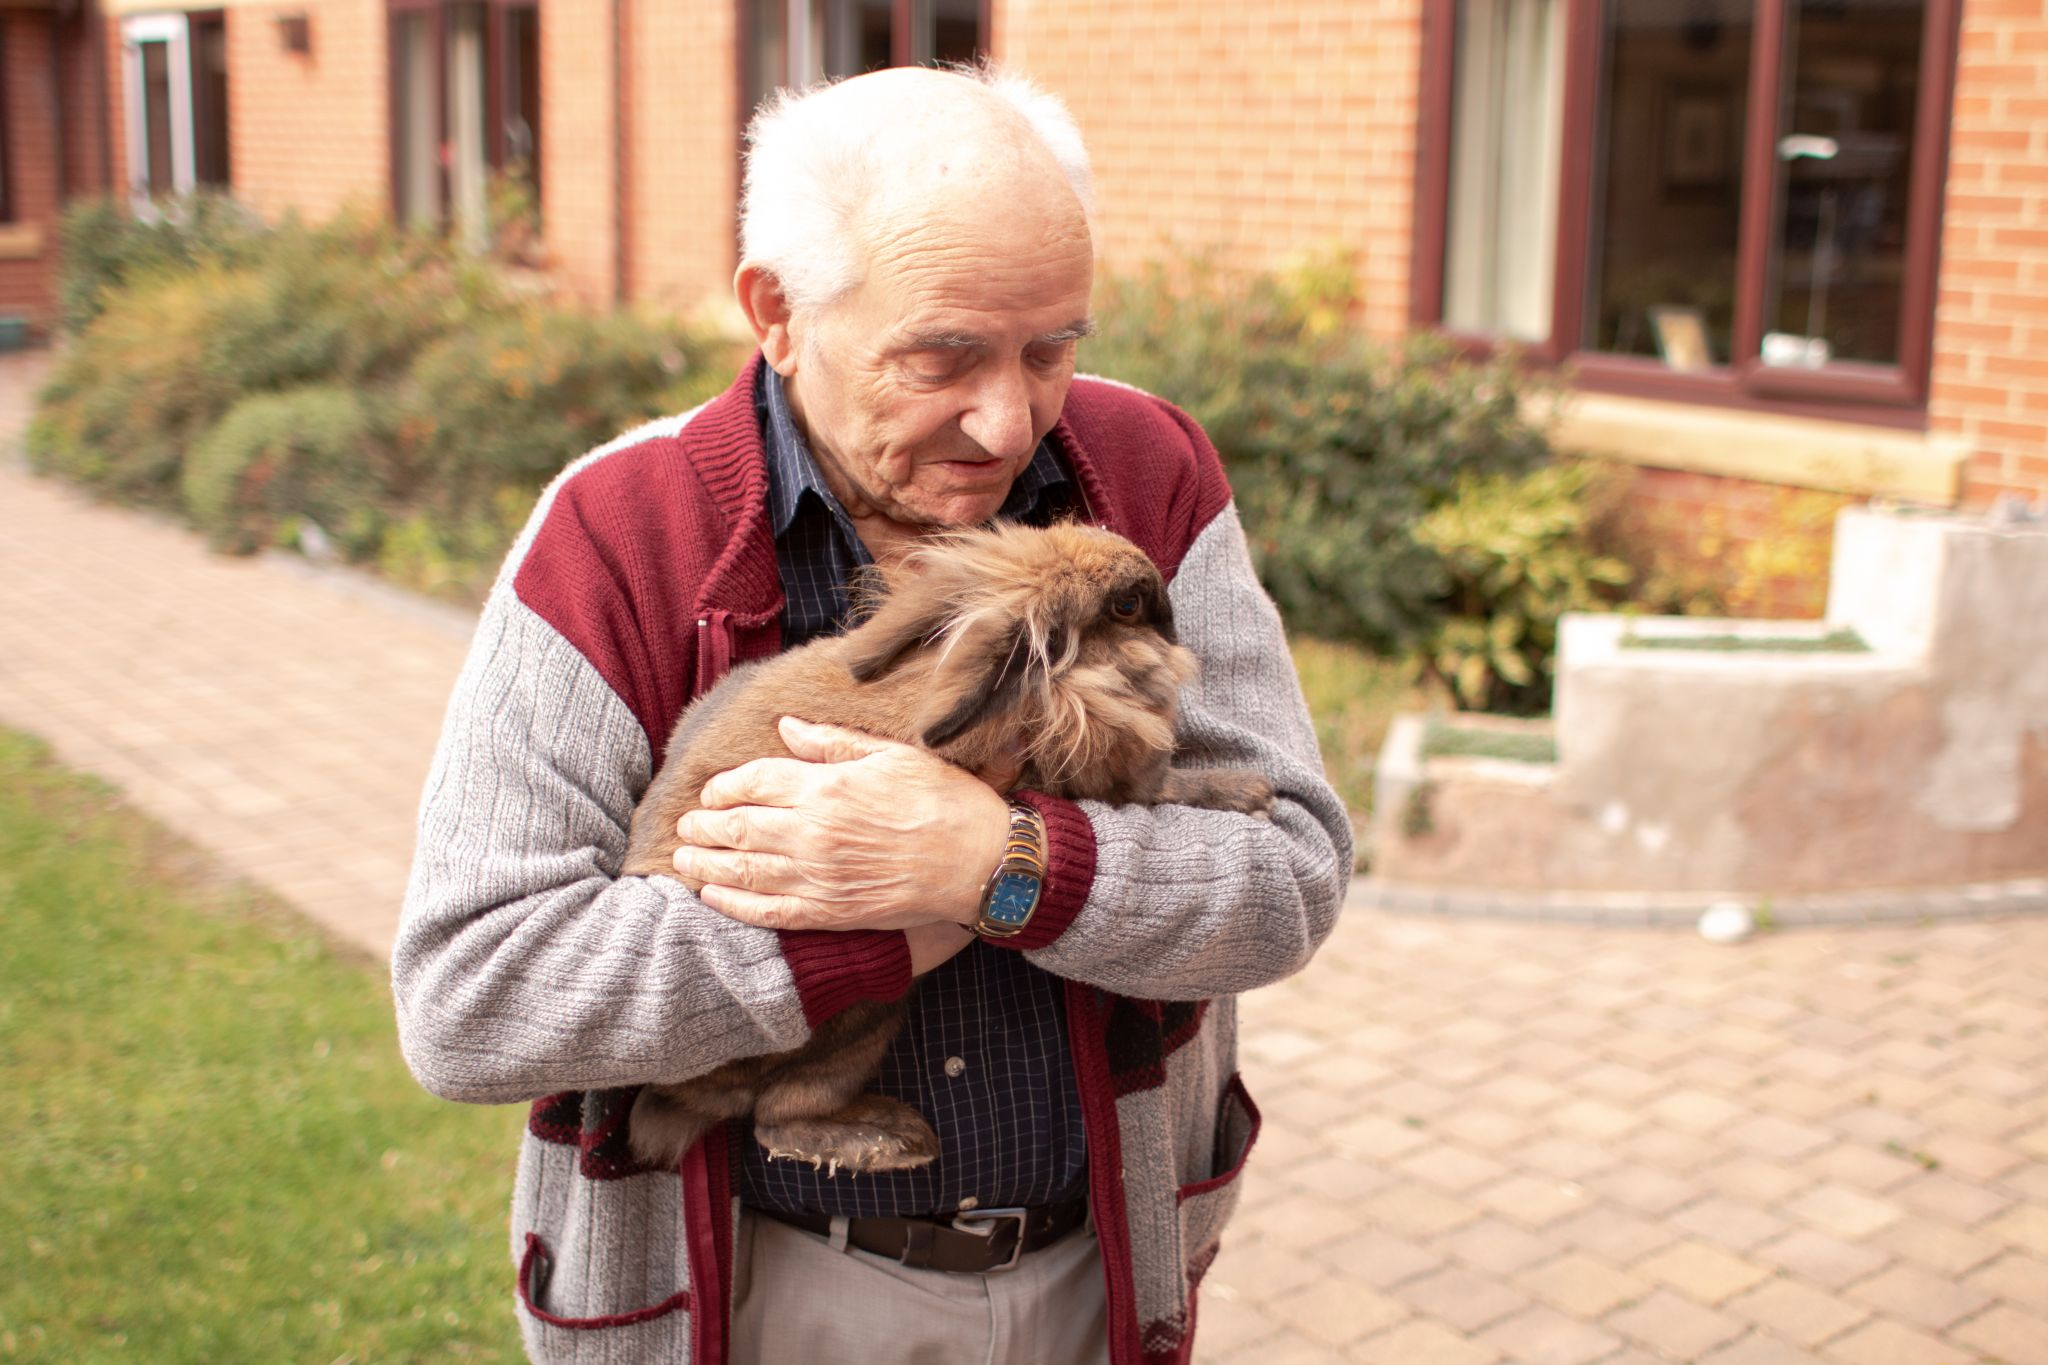 craig healthcare residents lifestyle photography hannah layford resident with rabbit